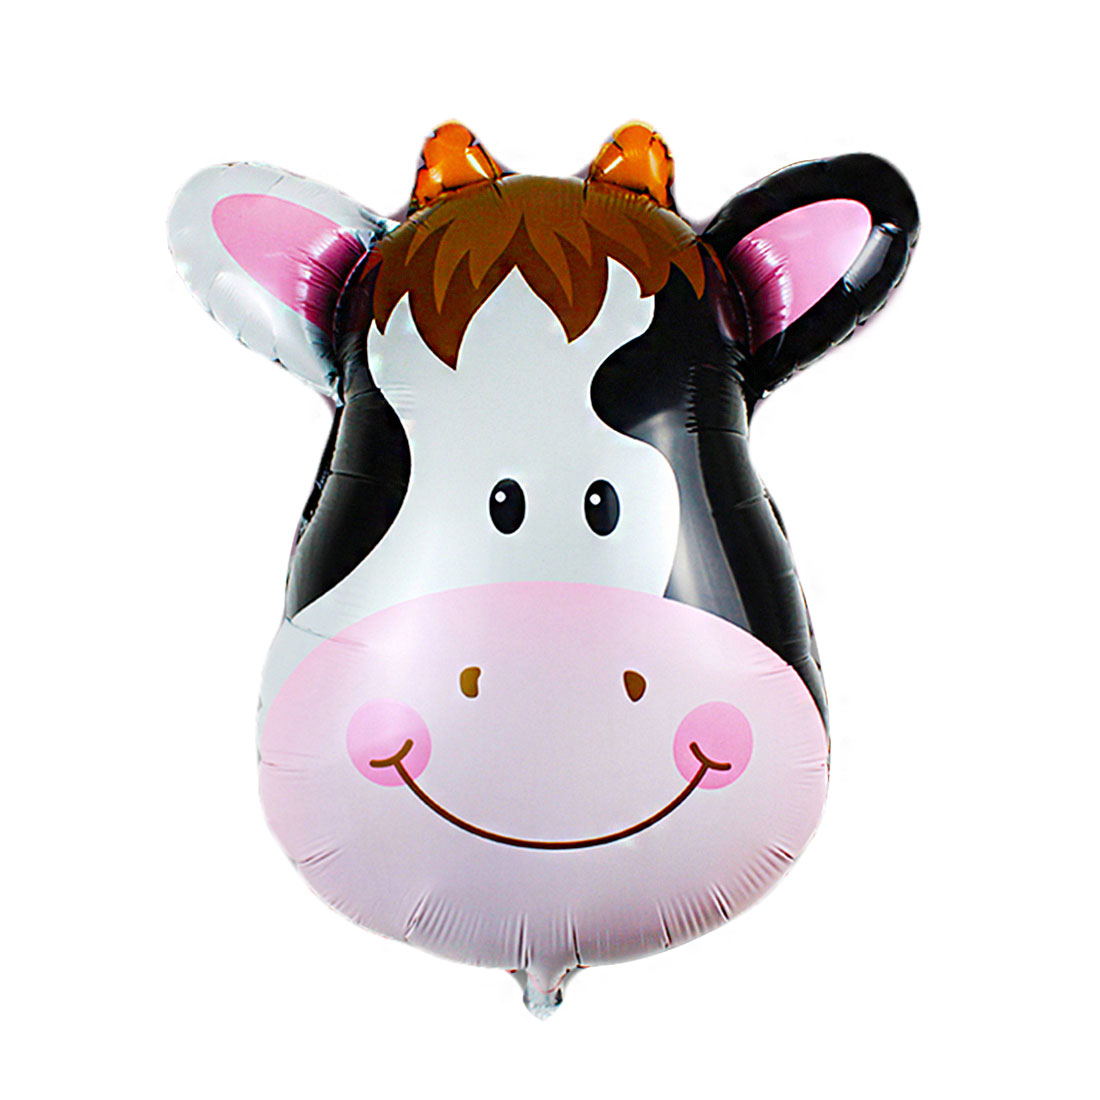 Unique Bargains Family Foil Cow Design Inflation Helium Balloon Birthday Ornament 11 Inch